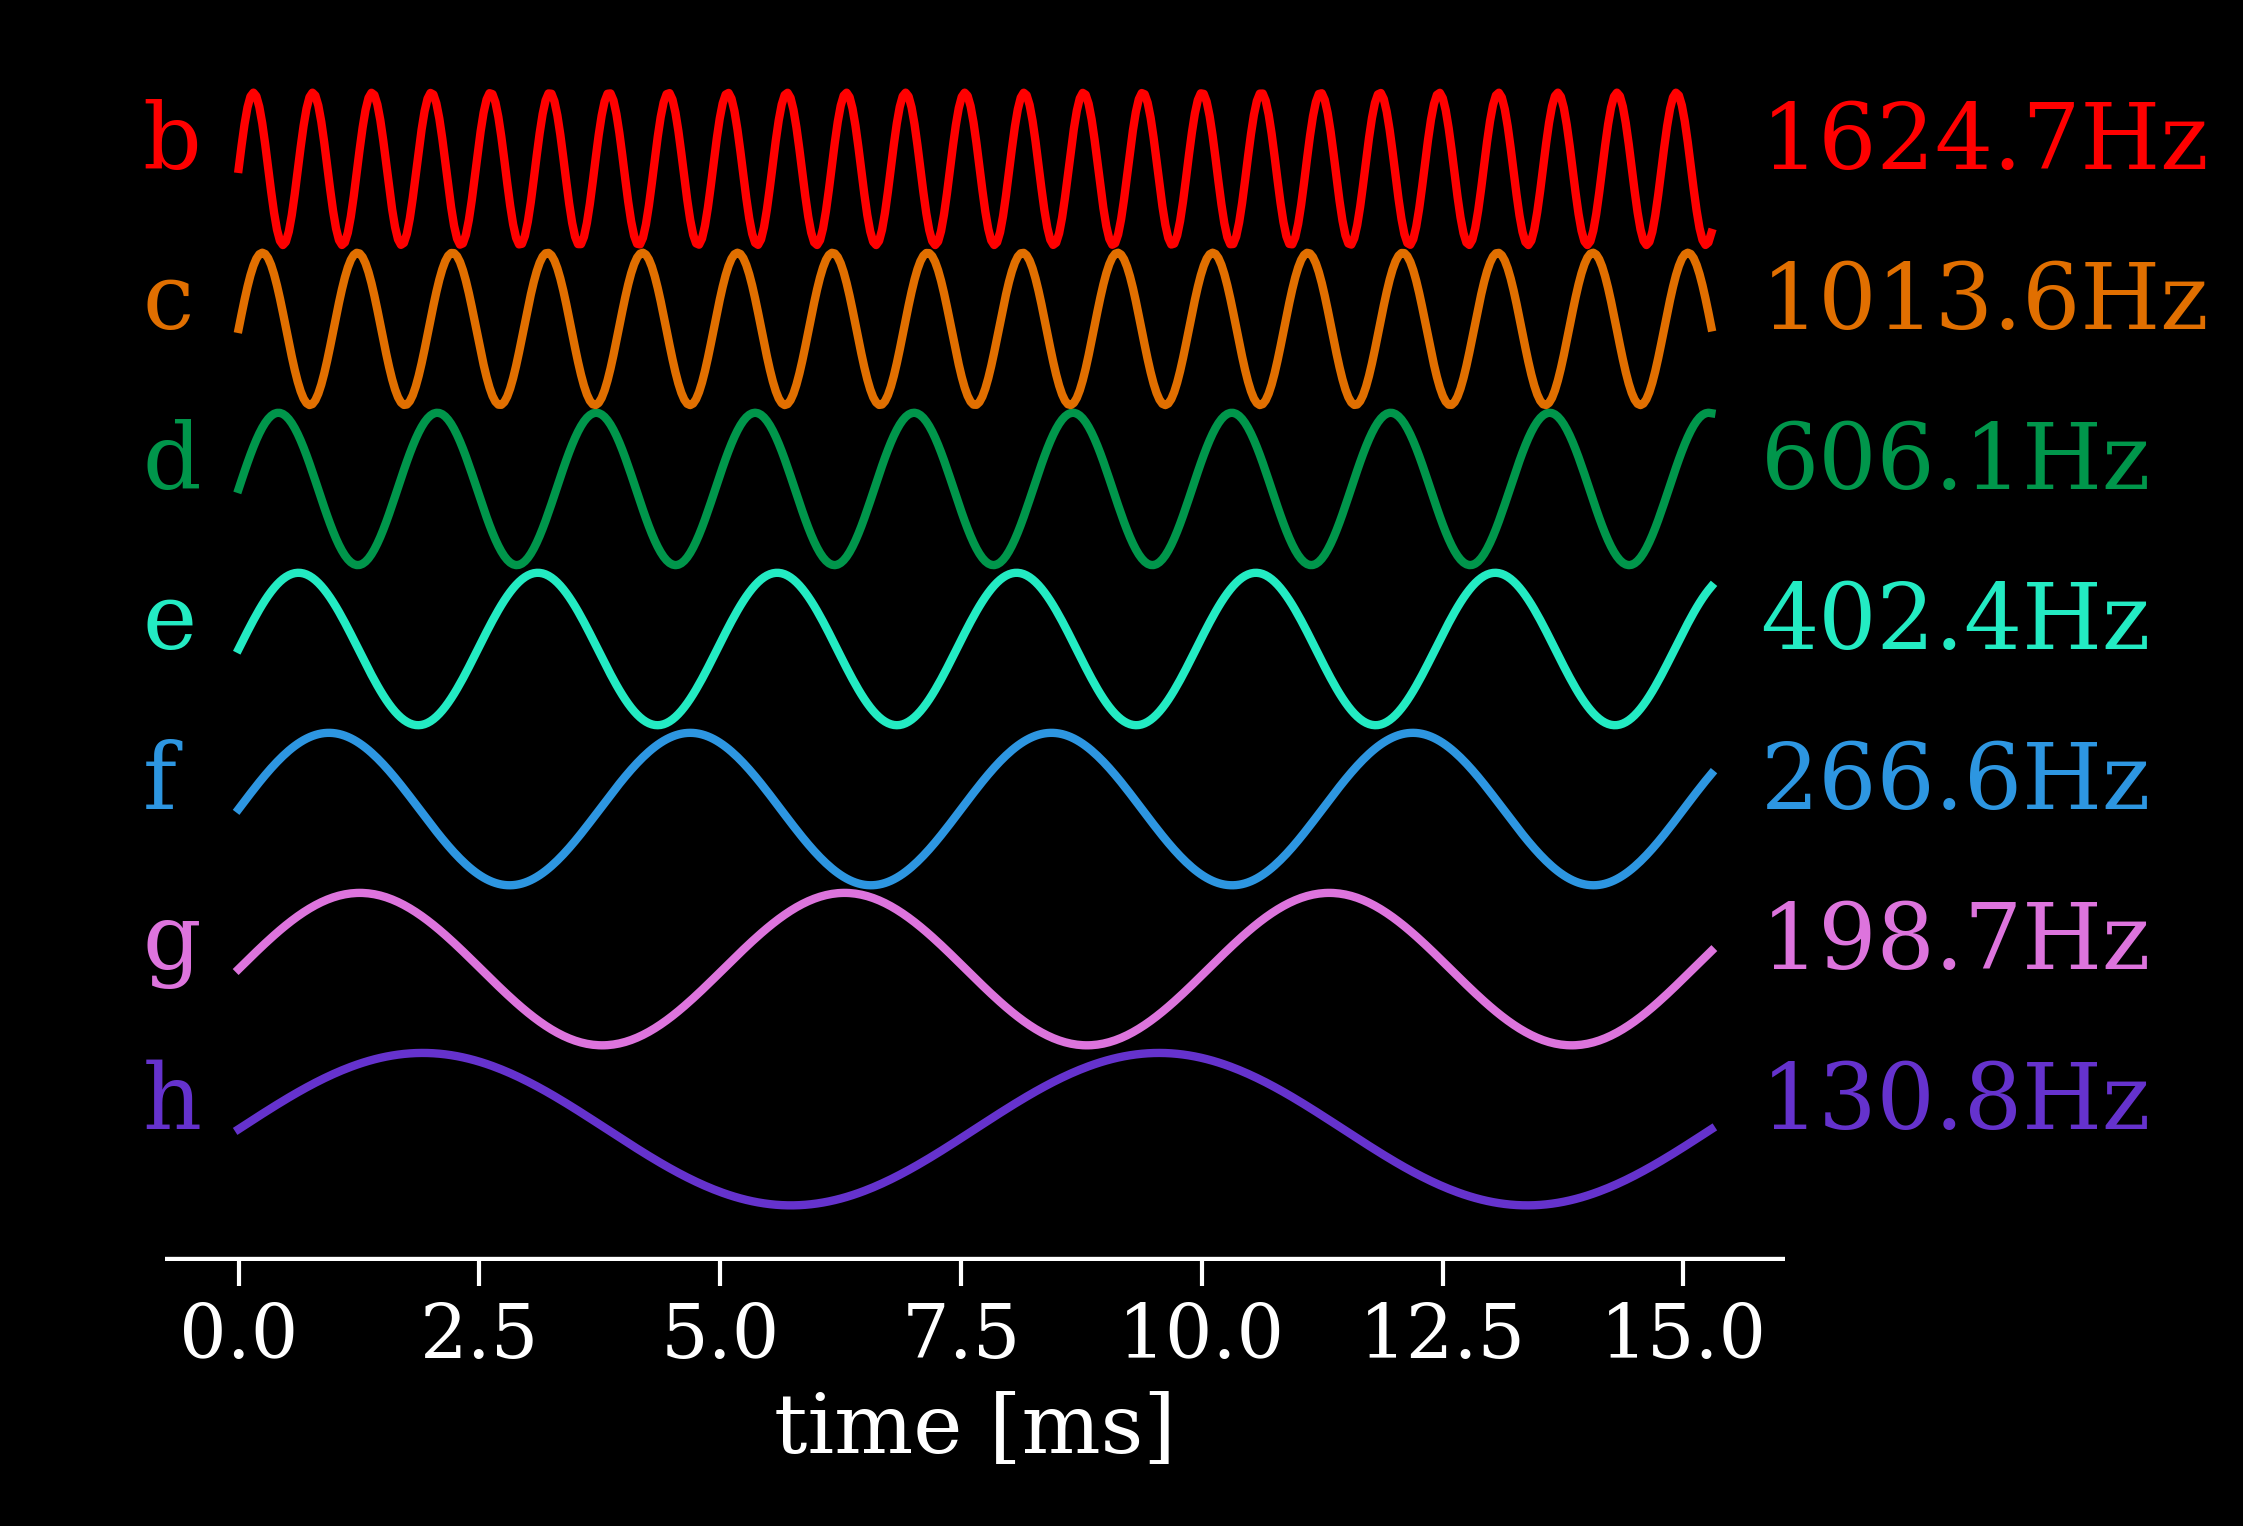 Sound waves with frequencies determined by scaling the planets' orbital frequencies into the human hearing range. We set the outermost planet to a C note (130.81 Hz) and let physics do the rest. You can also see the resonances here, for example, 3 full wavelengths of planet g occur for every 2 wavelengths of planet h. Letters on left of image refer to planet names, not note names.